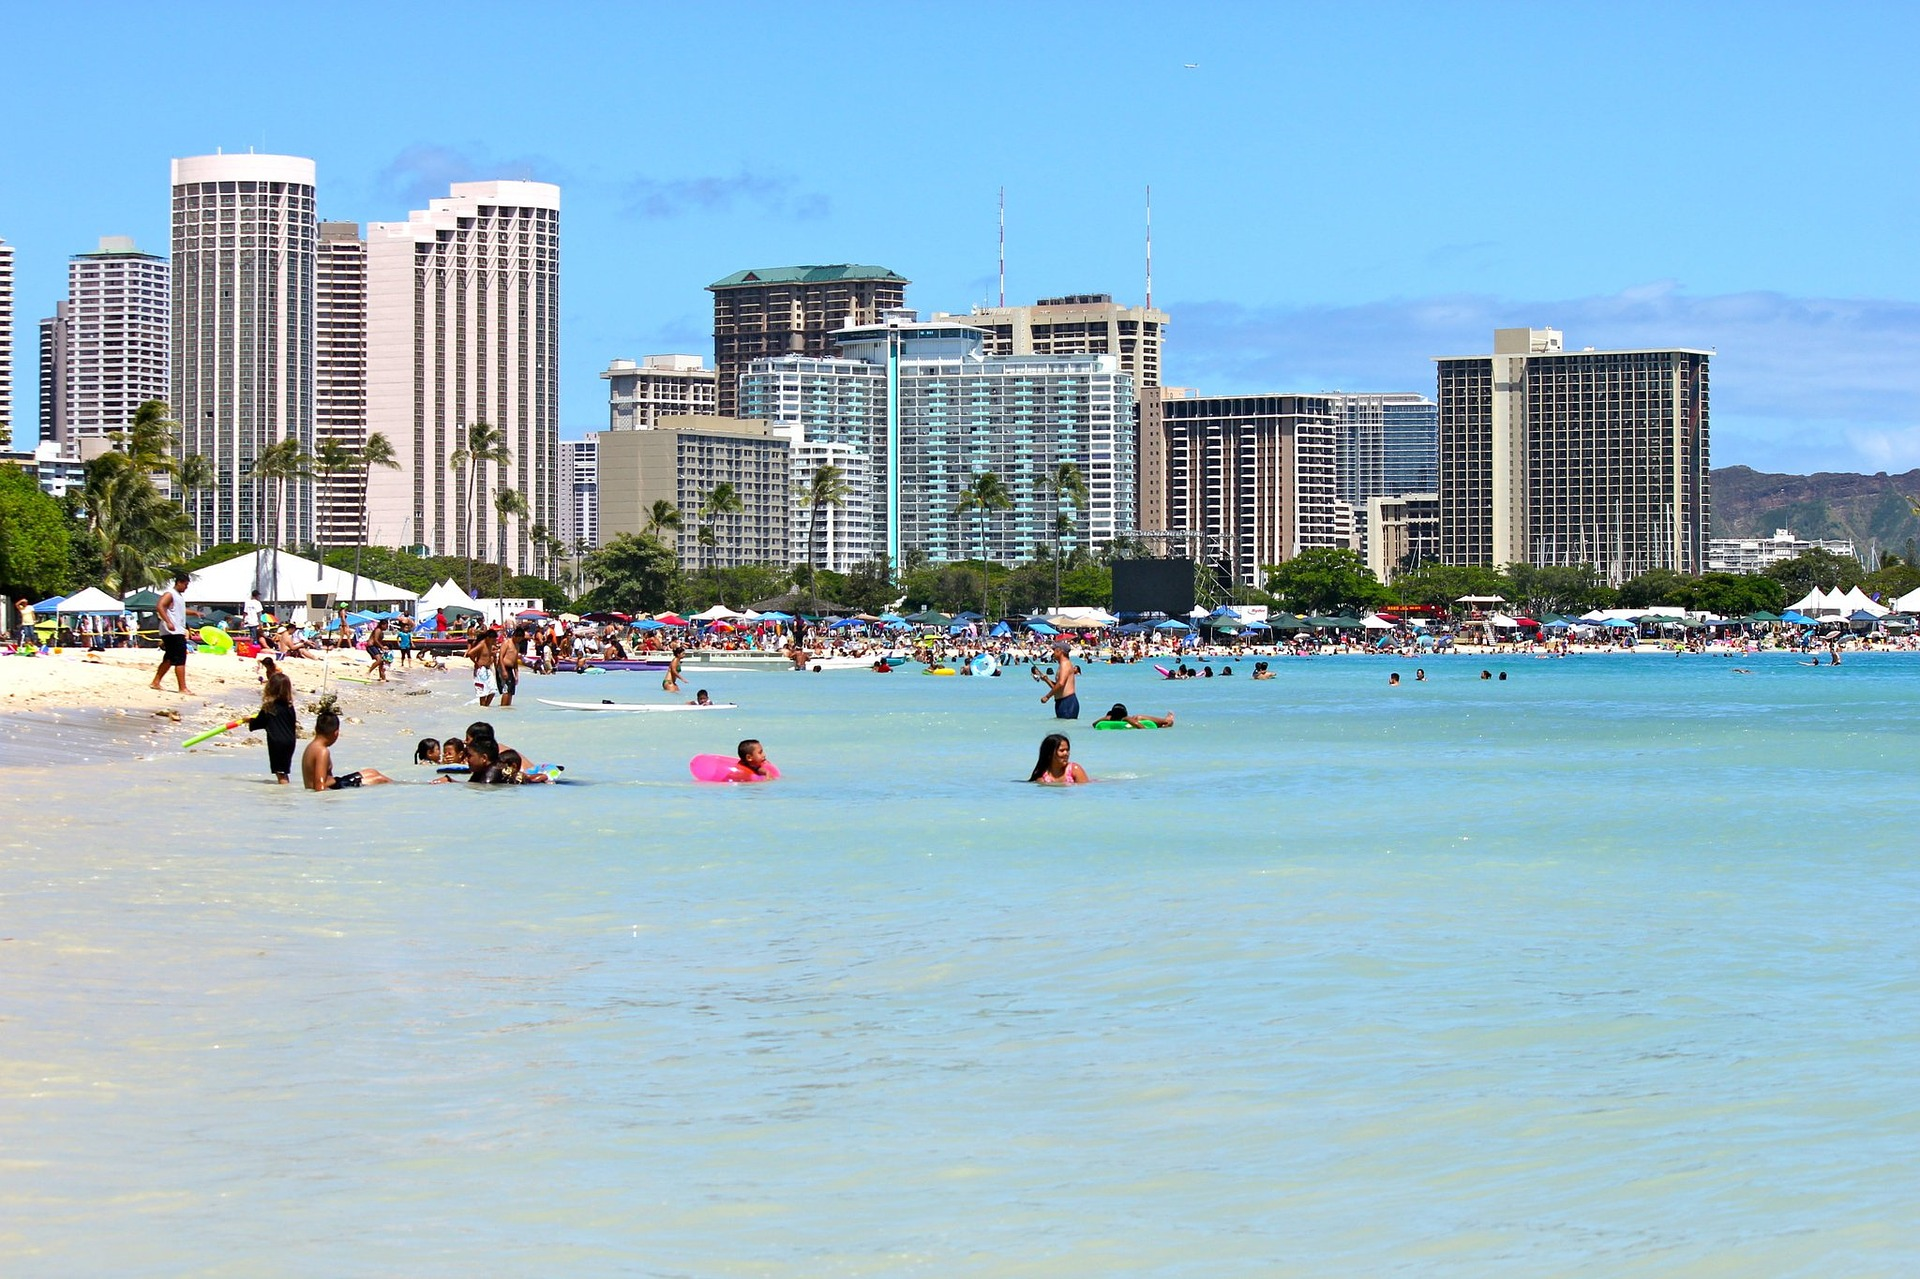 Waikiki Beach in Honolulu auf O'hau